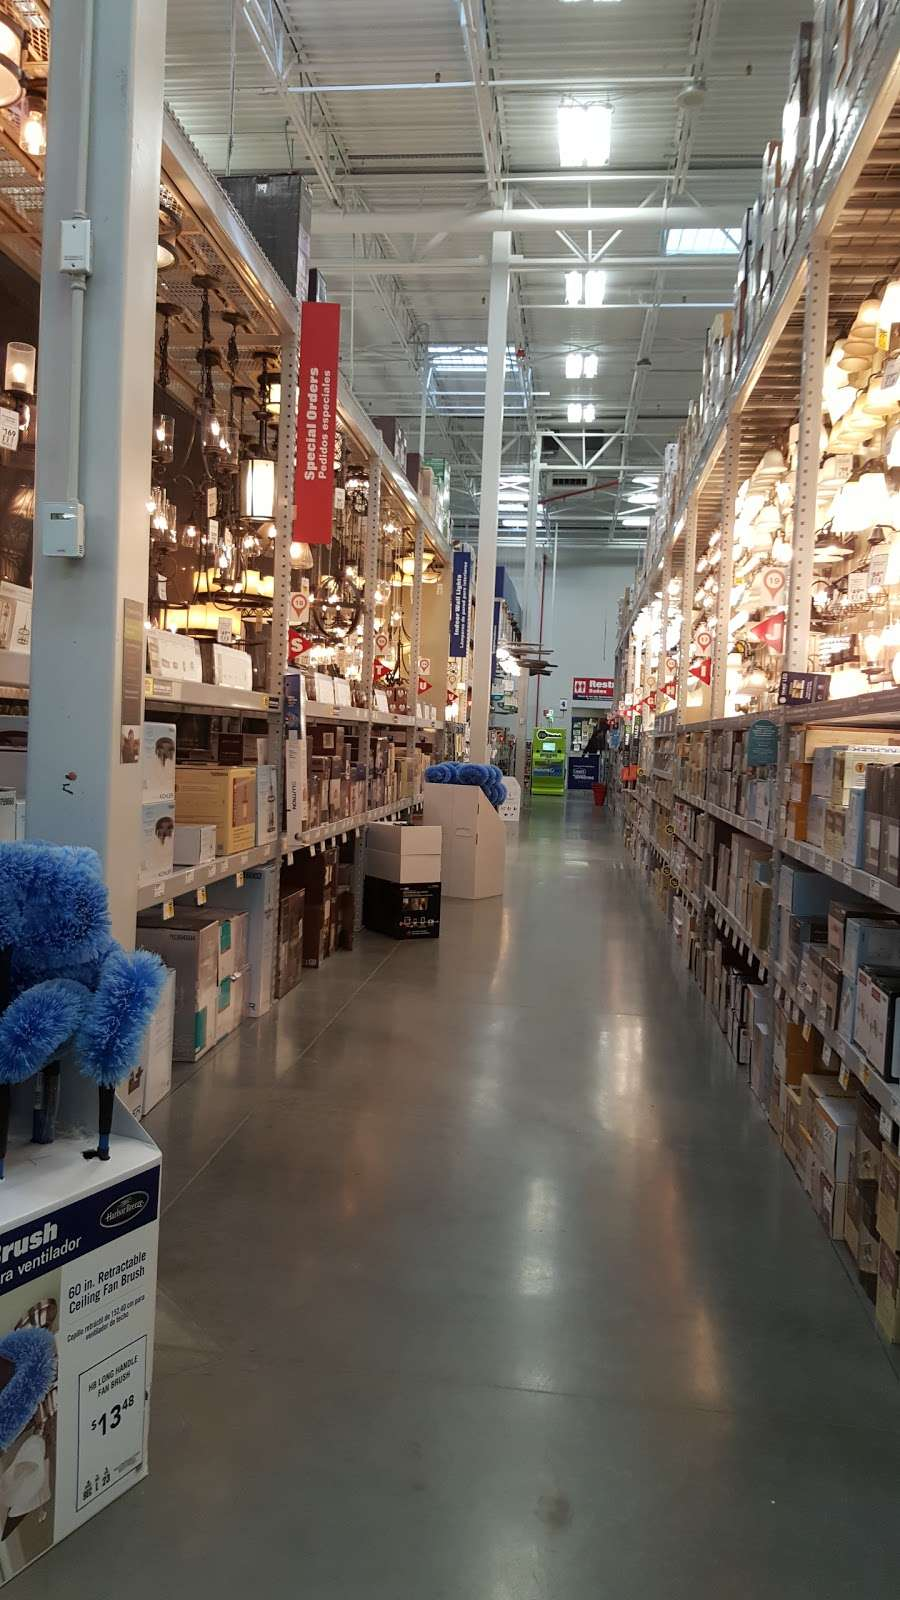 Lowes Home Improvement - hardware store  | Photo 2 of 10 | Address: 3400 N Texas St, Fairfield, CA 94533, USA | Phone: (707) 207-2070